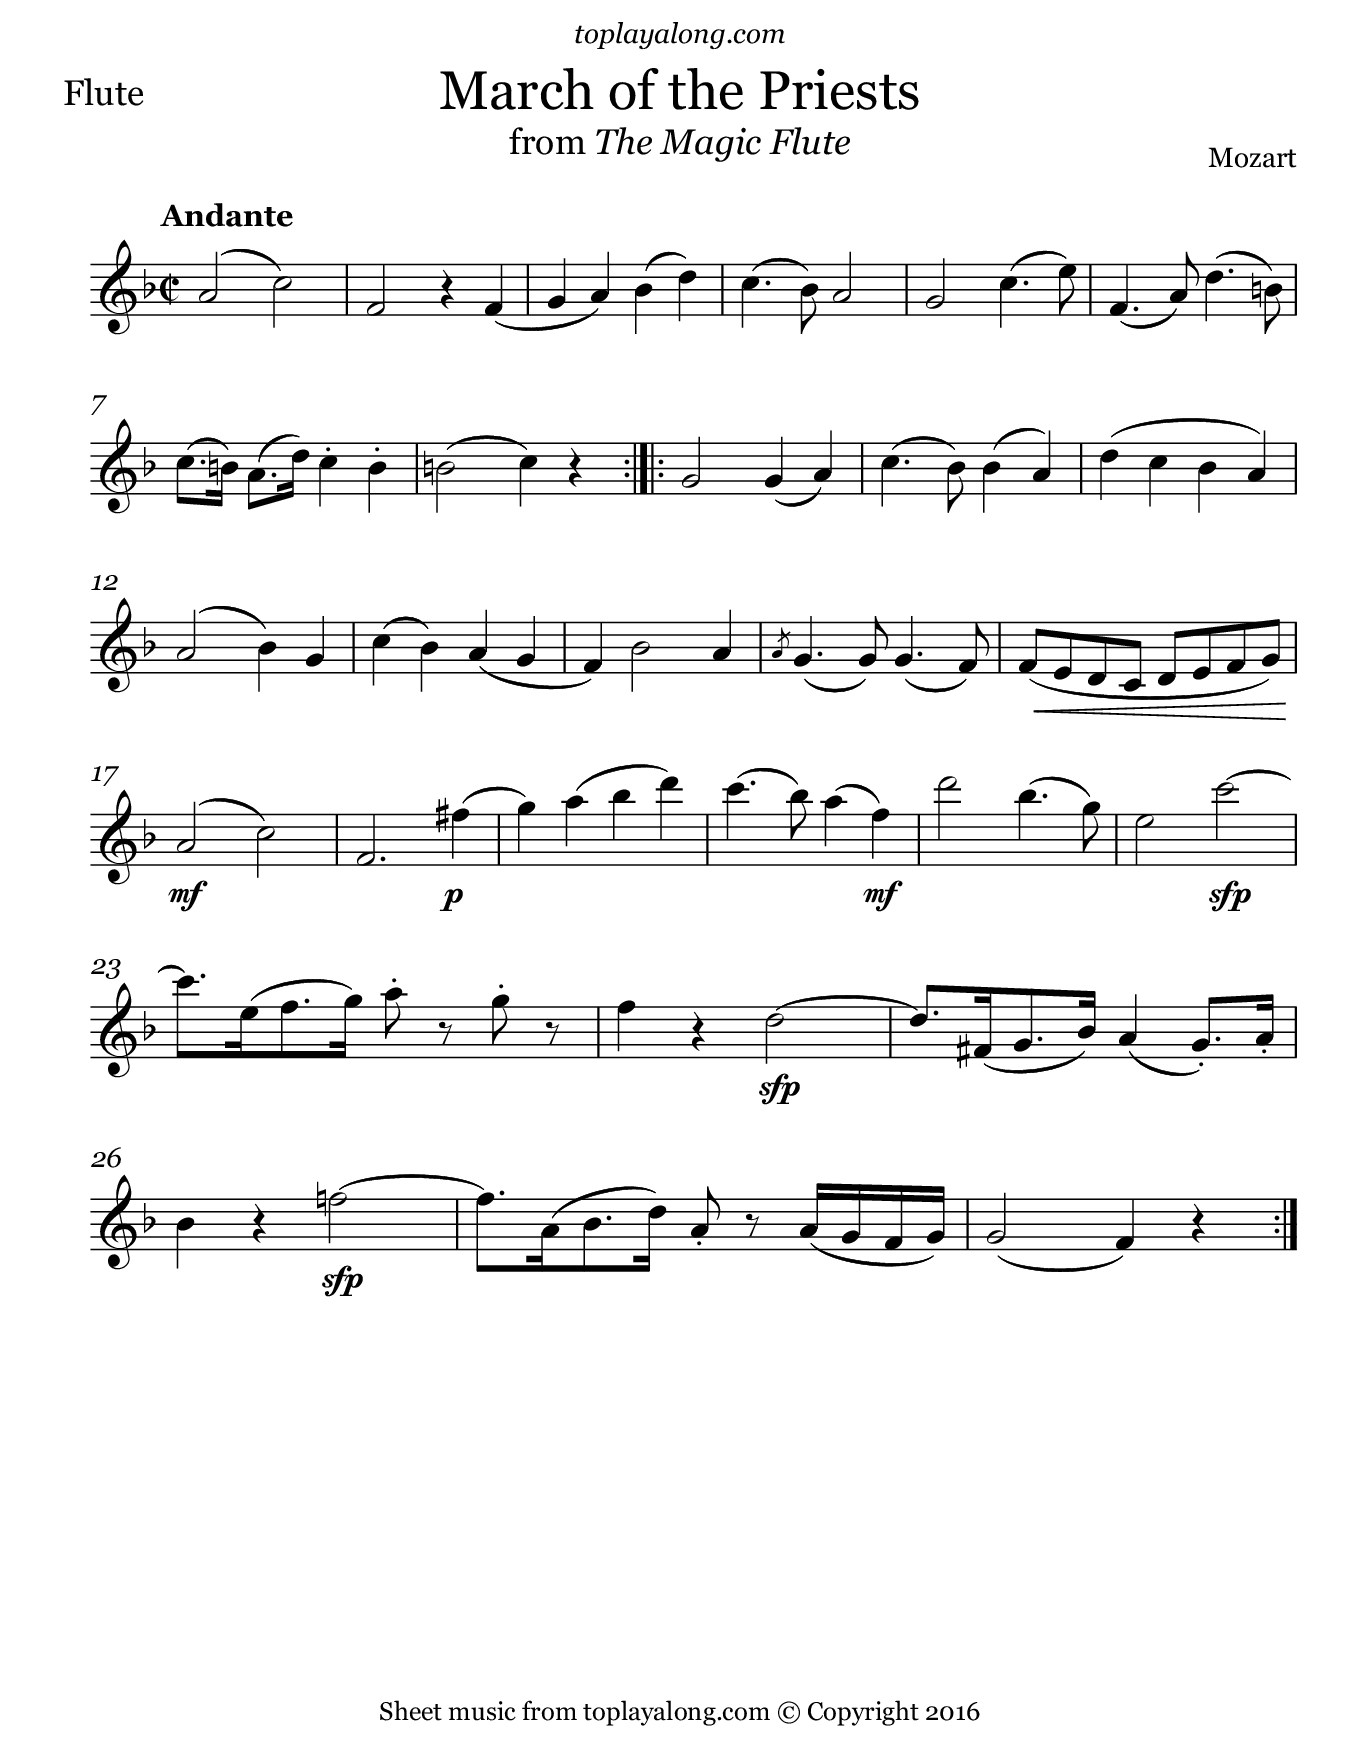 March of the Priests from The Magic Flute by Mozart. Sheet music for Flute, page 1.